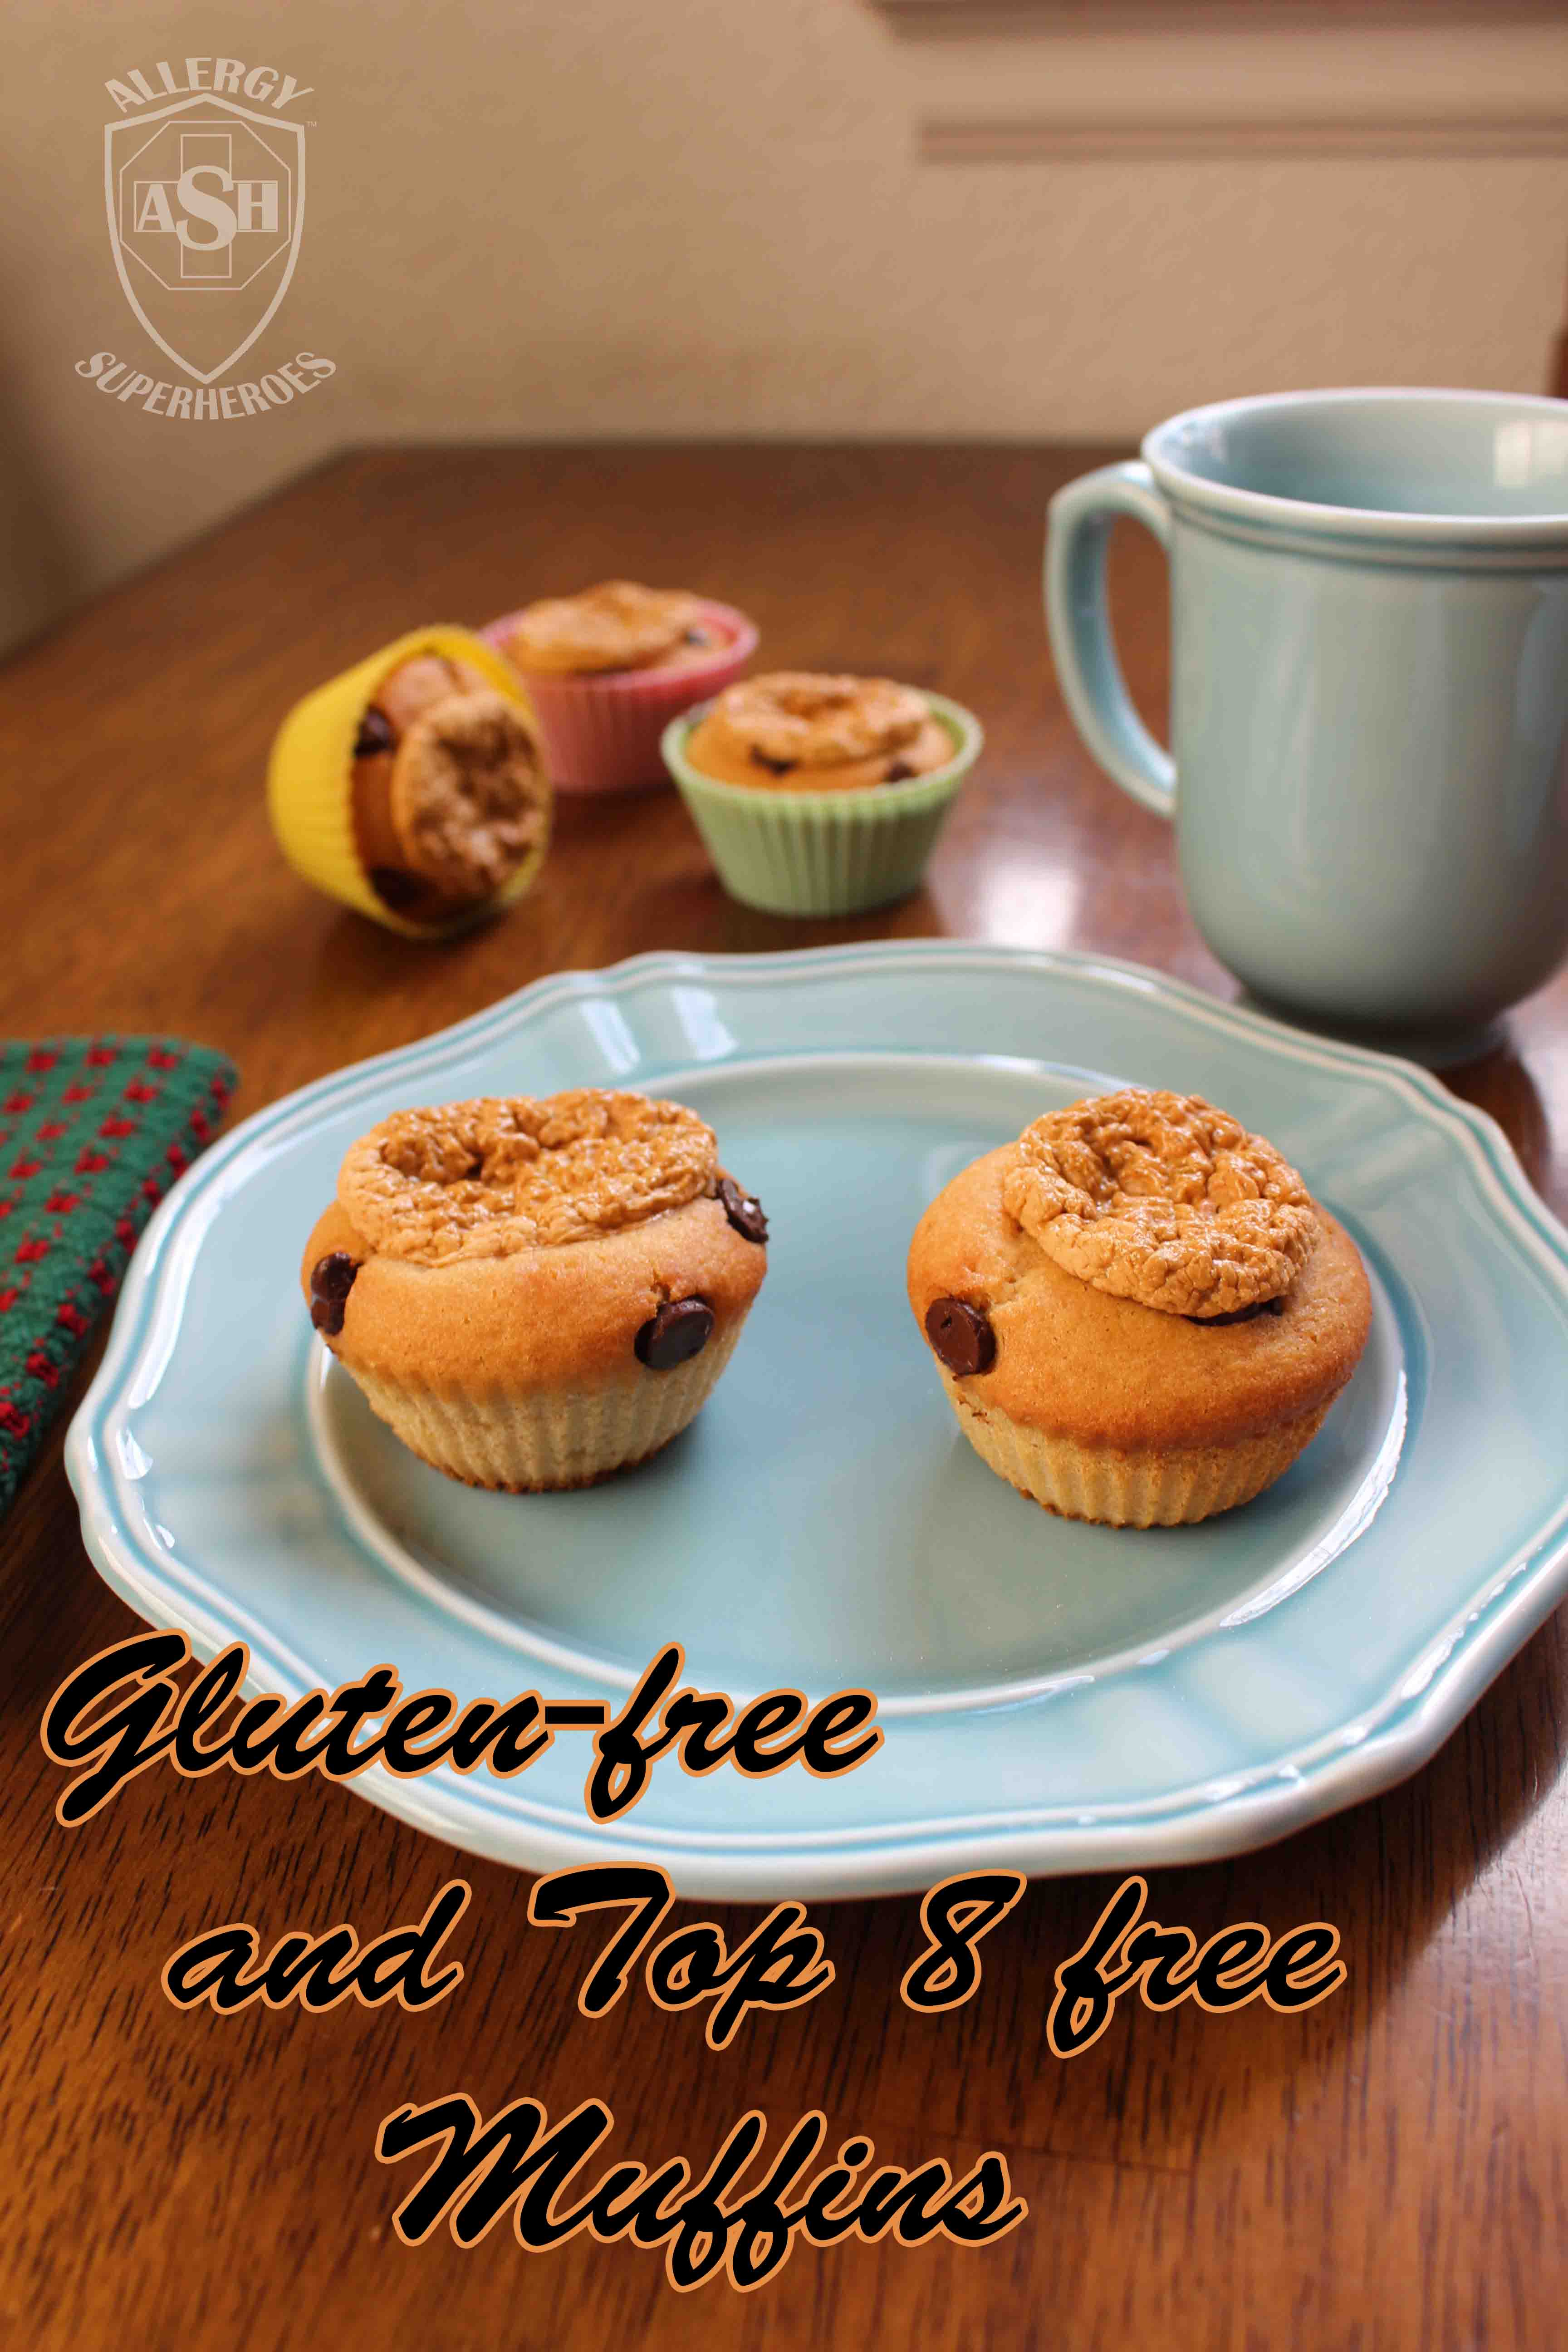 Gluten and Top 8 Free Muffins | Super Tasty! | Allergy Superheroes